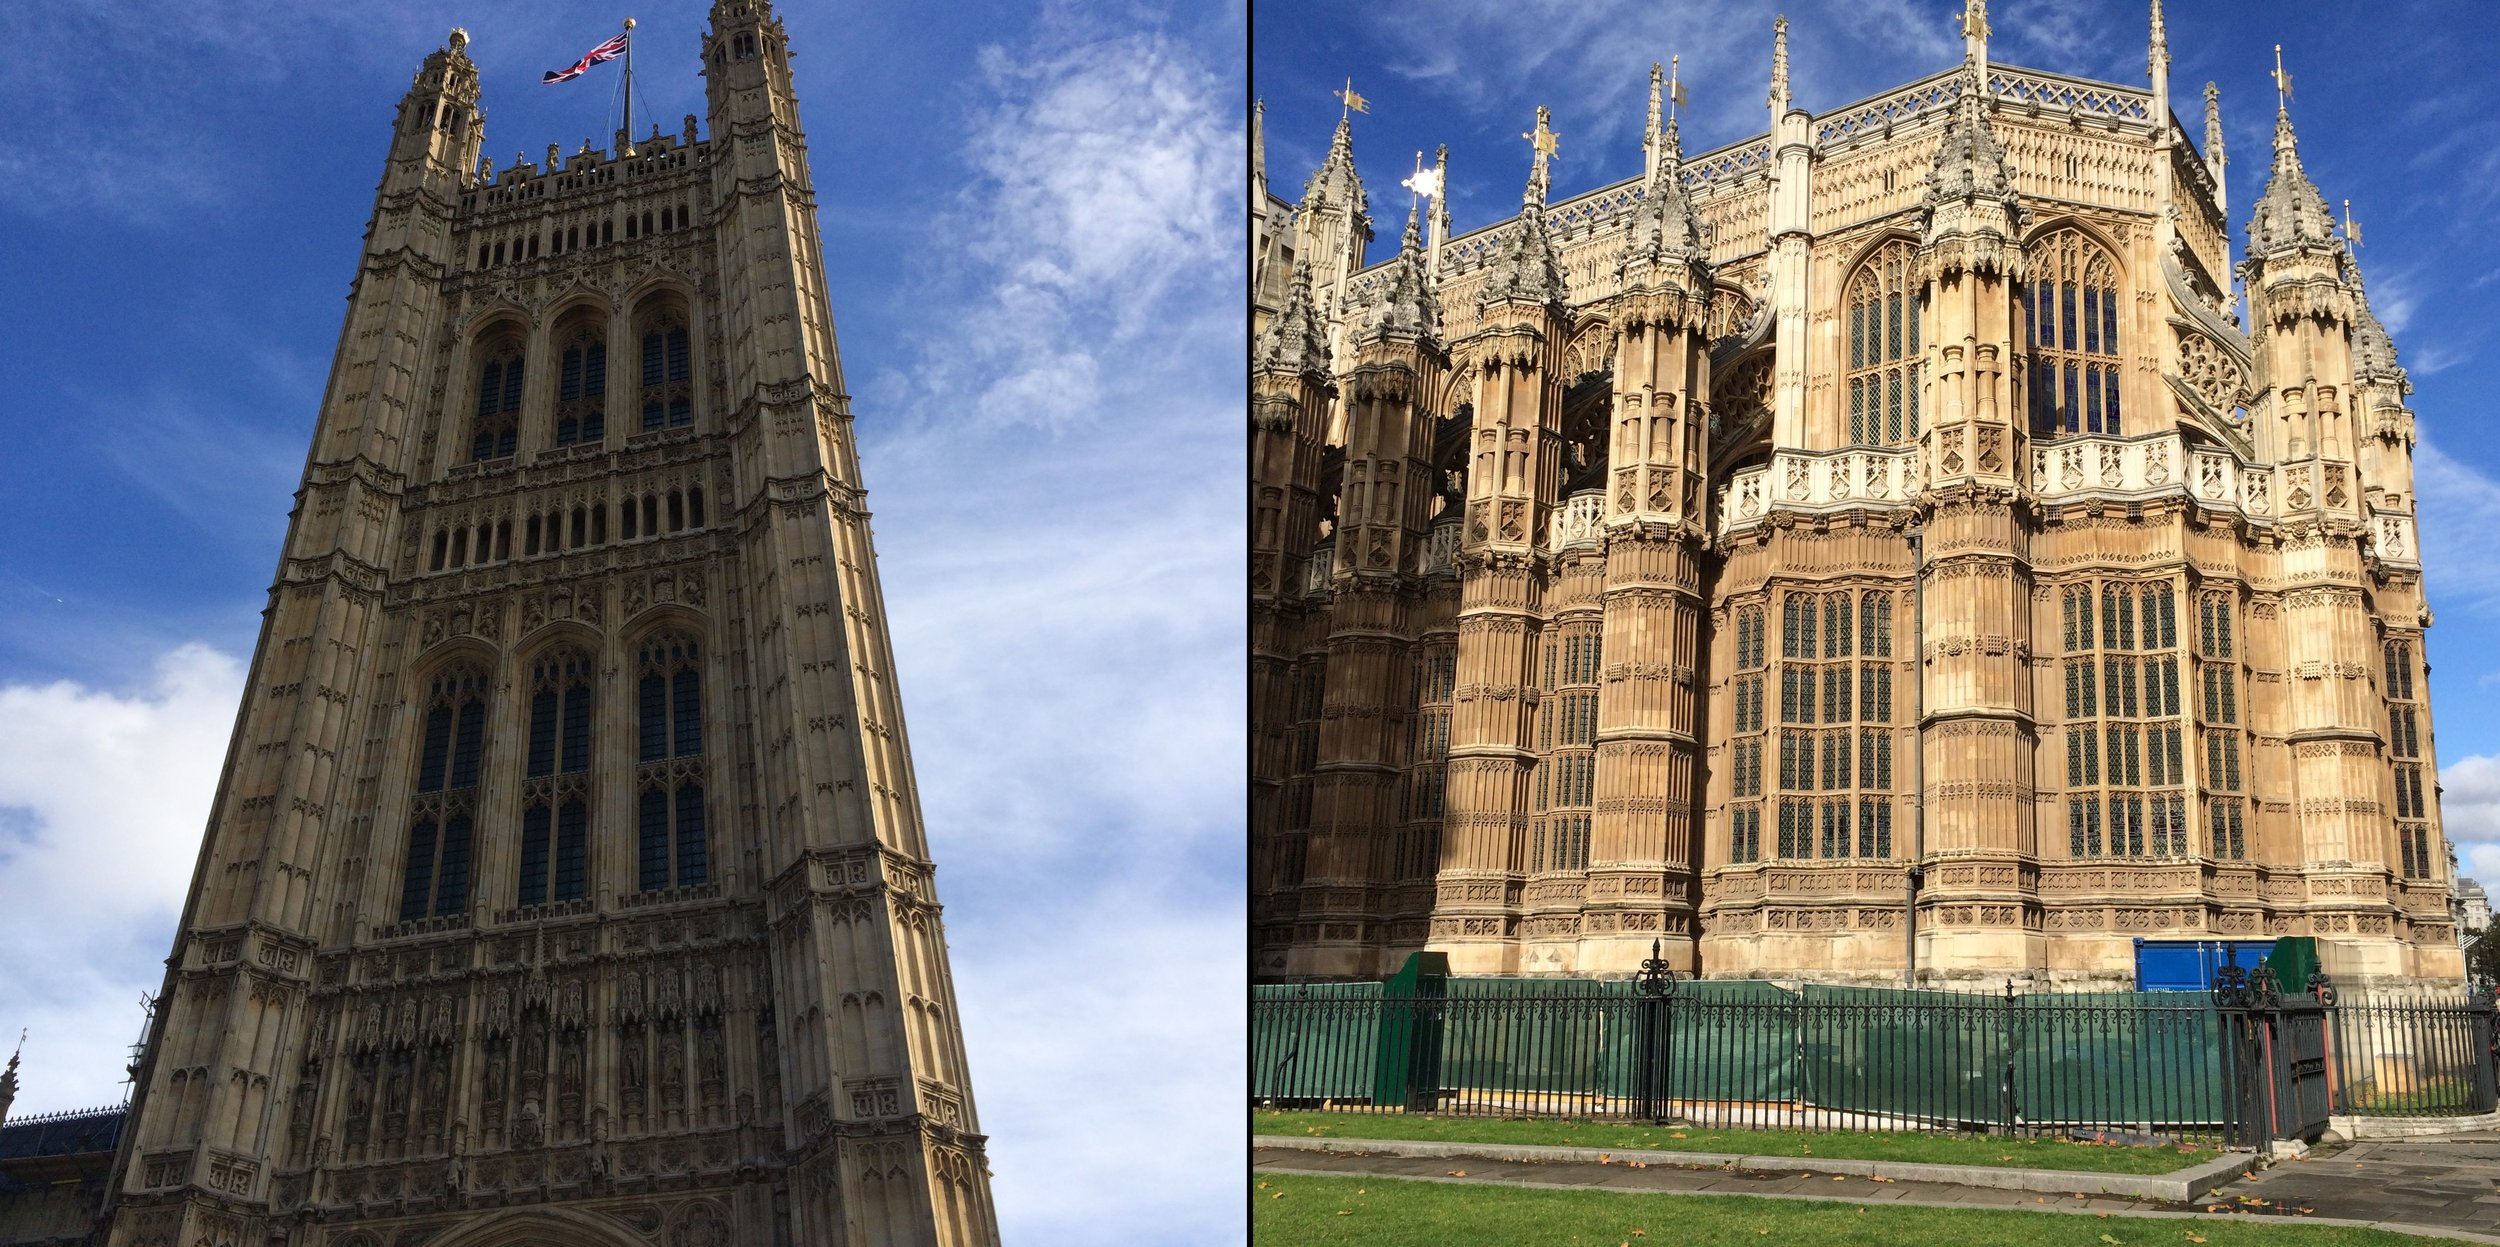 Victoria Tower and Houses of Parliament at Westminster